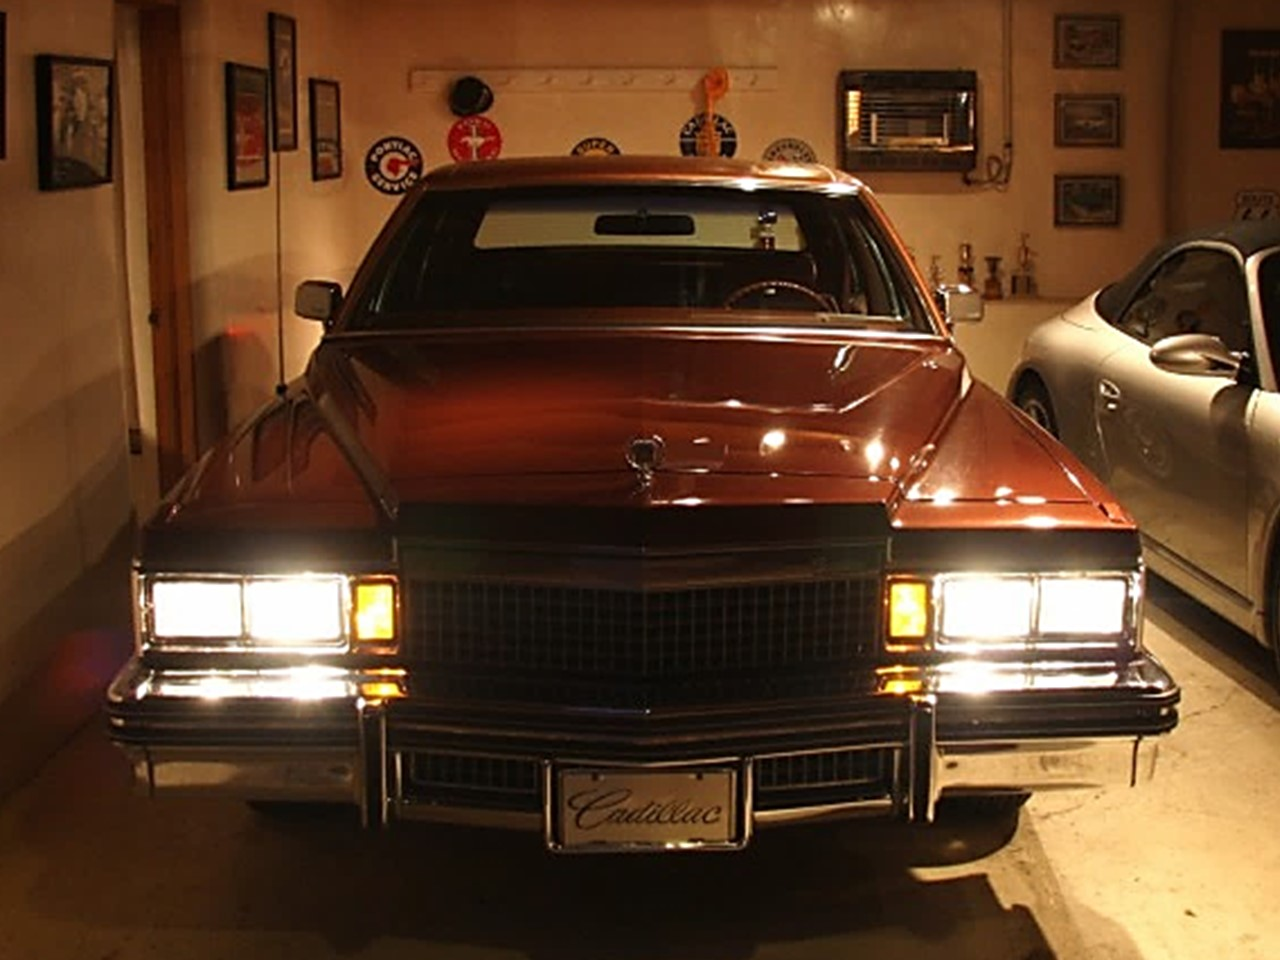 2018 cadillac fleetwood brougham. delighful cadillac the 1979 fleetwood brougham is notoriousluxury  20172018 in 2018 cadillac fleetwood brougham c